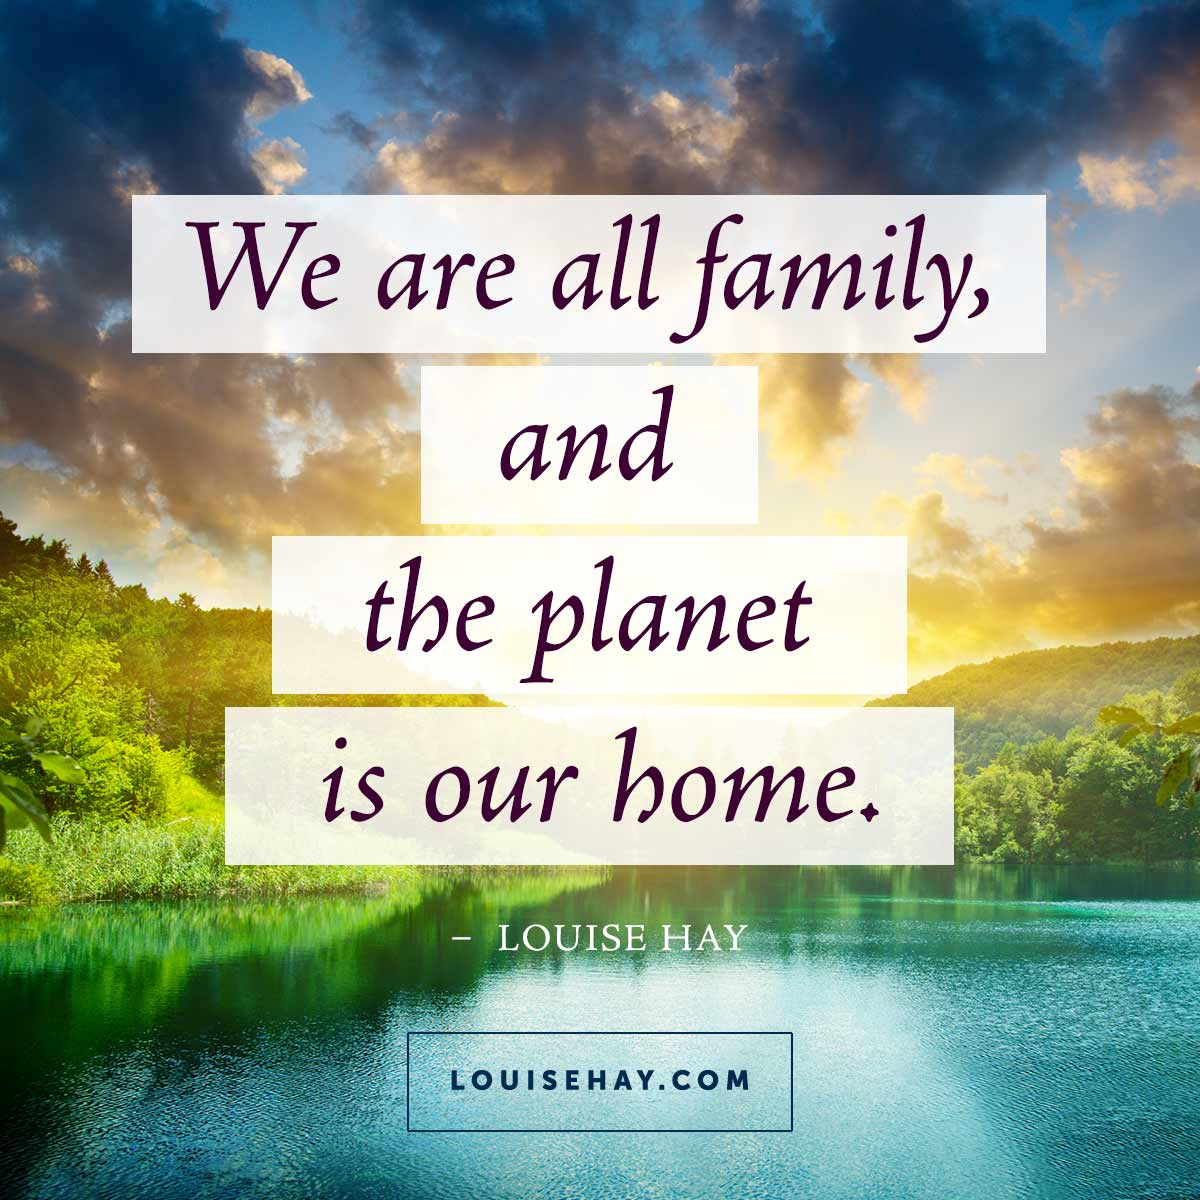 Home Inspiration: Daily Affirmations & Beautiful Quotes From Louise Hay